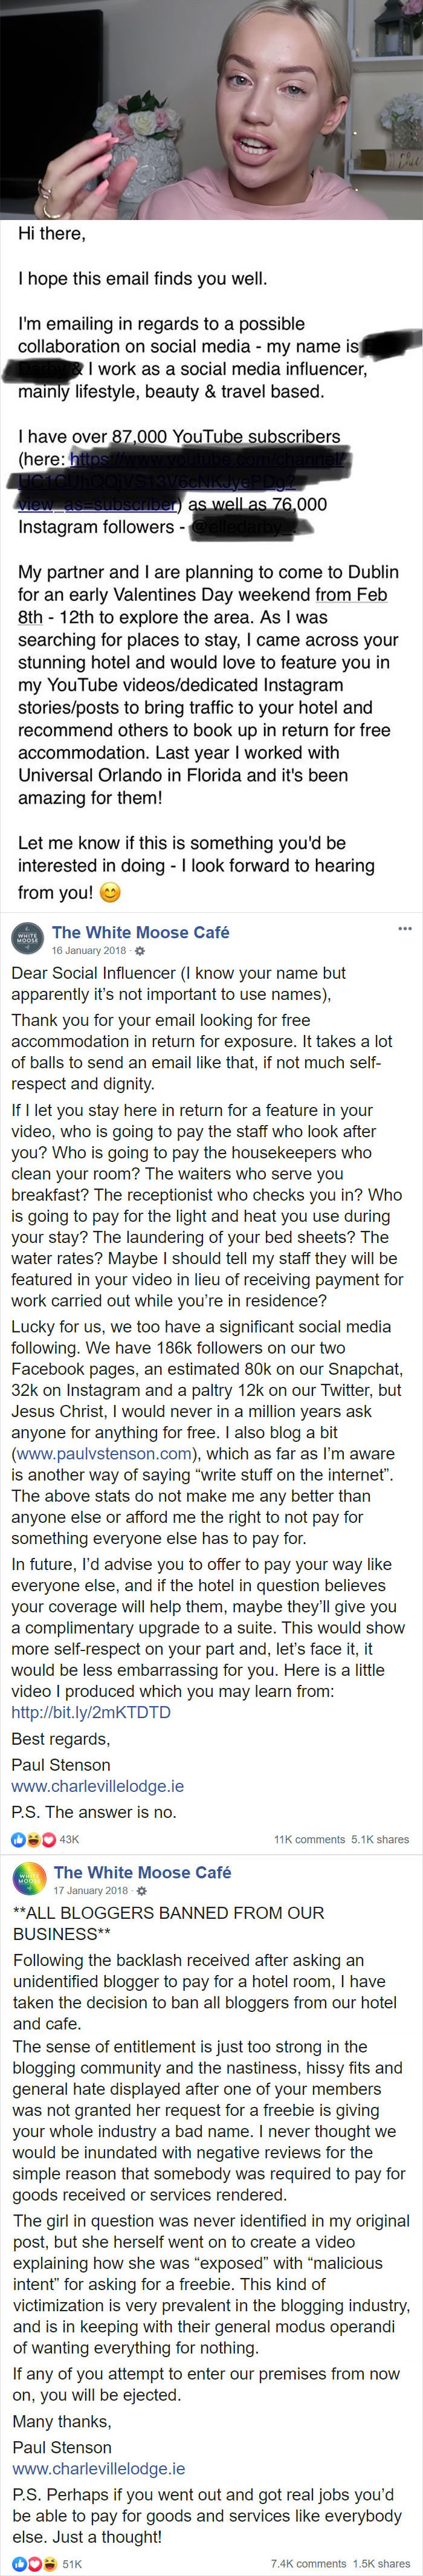 Influencer Tries To Get Accommodation For Free, They End Up Banning All Bloggers From Their Business